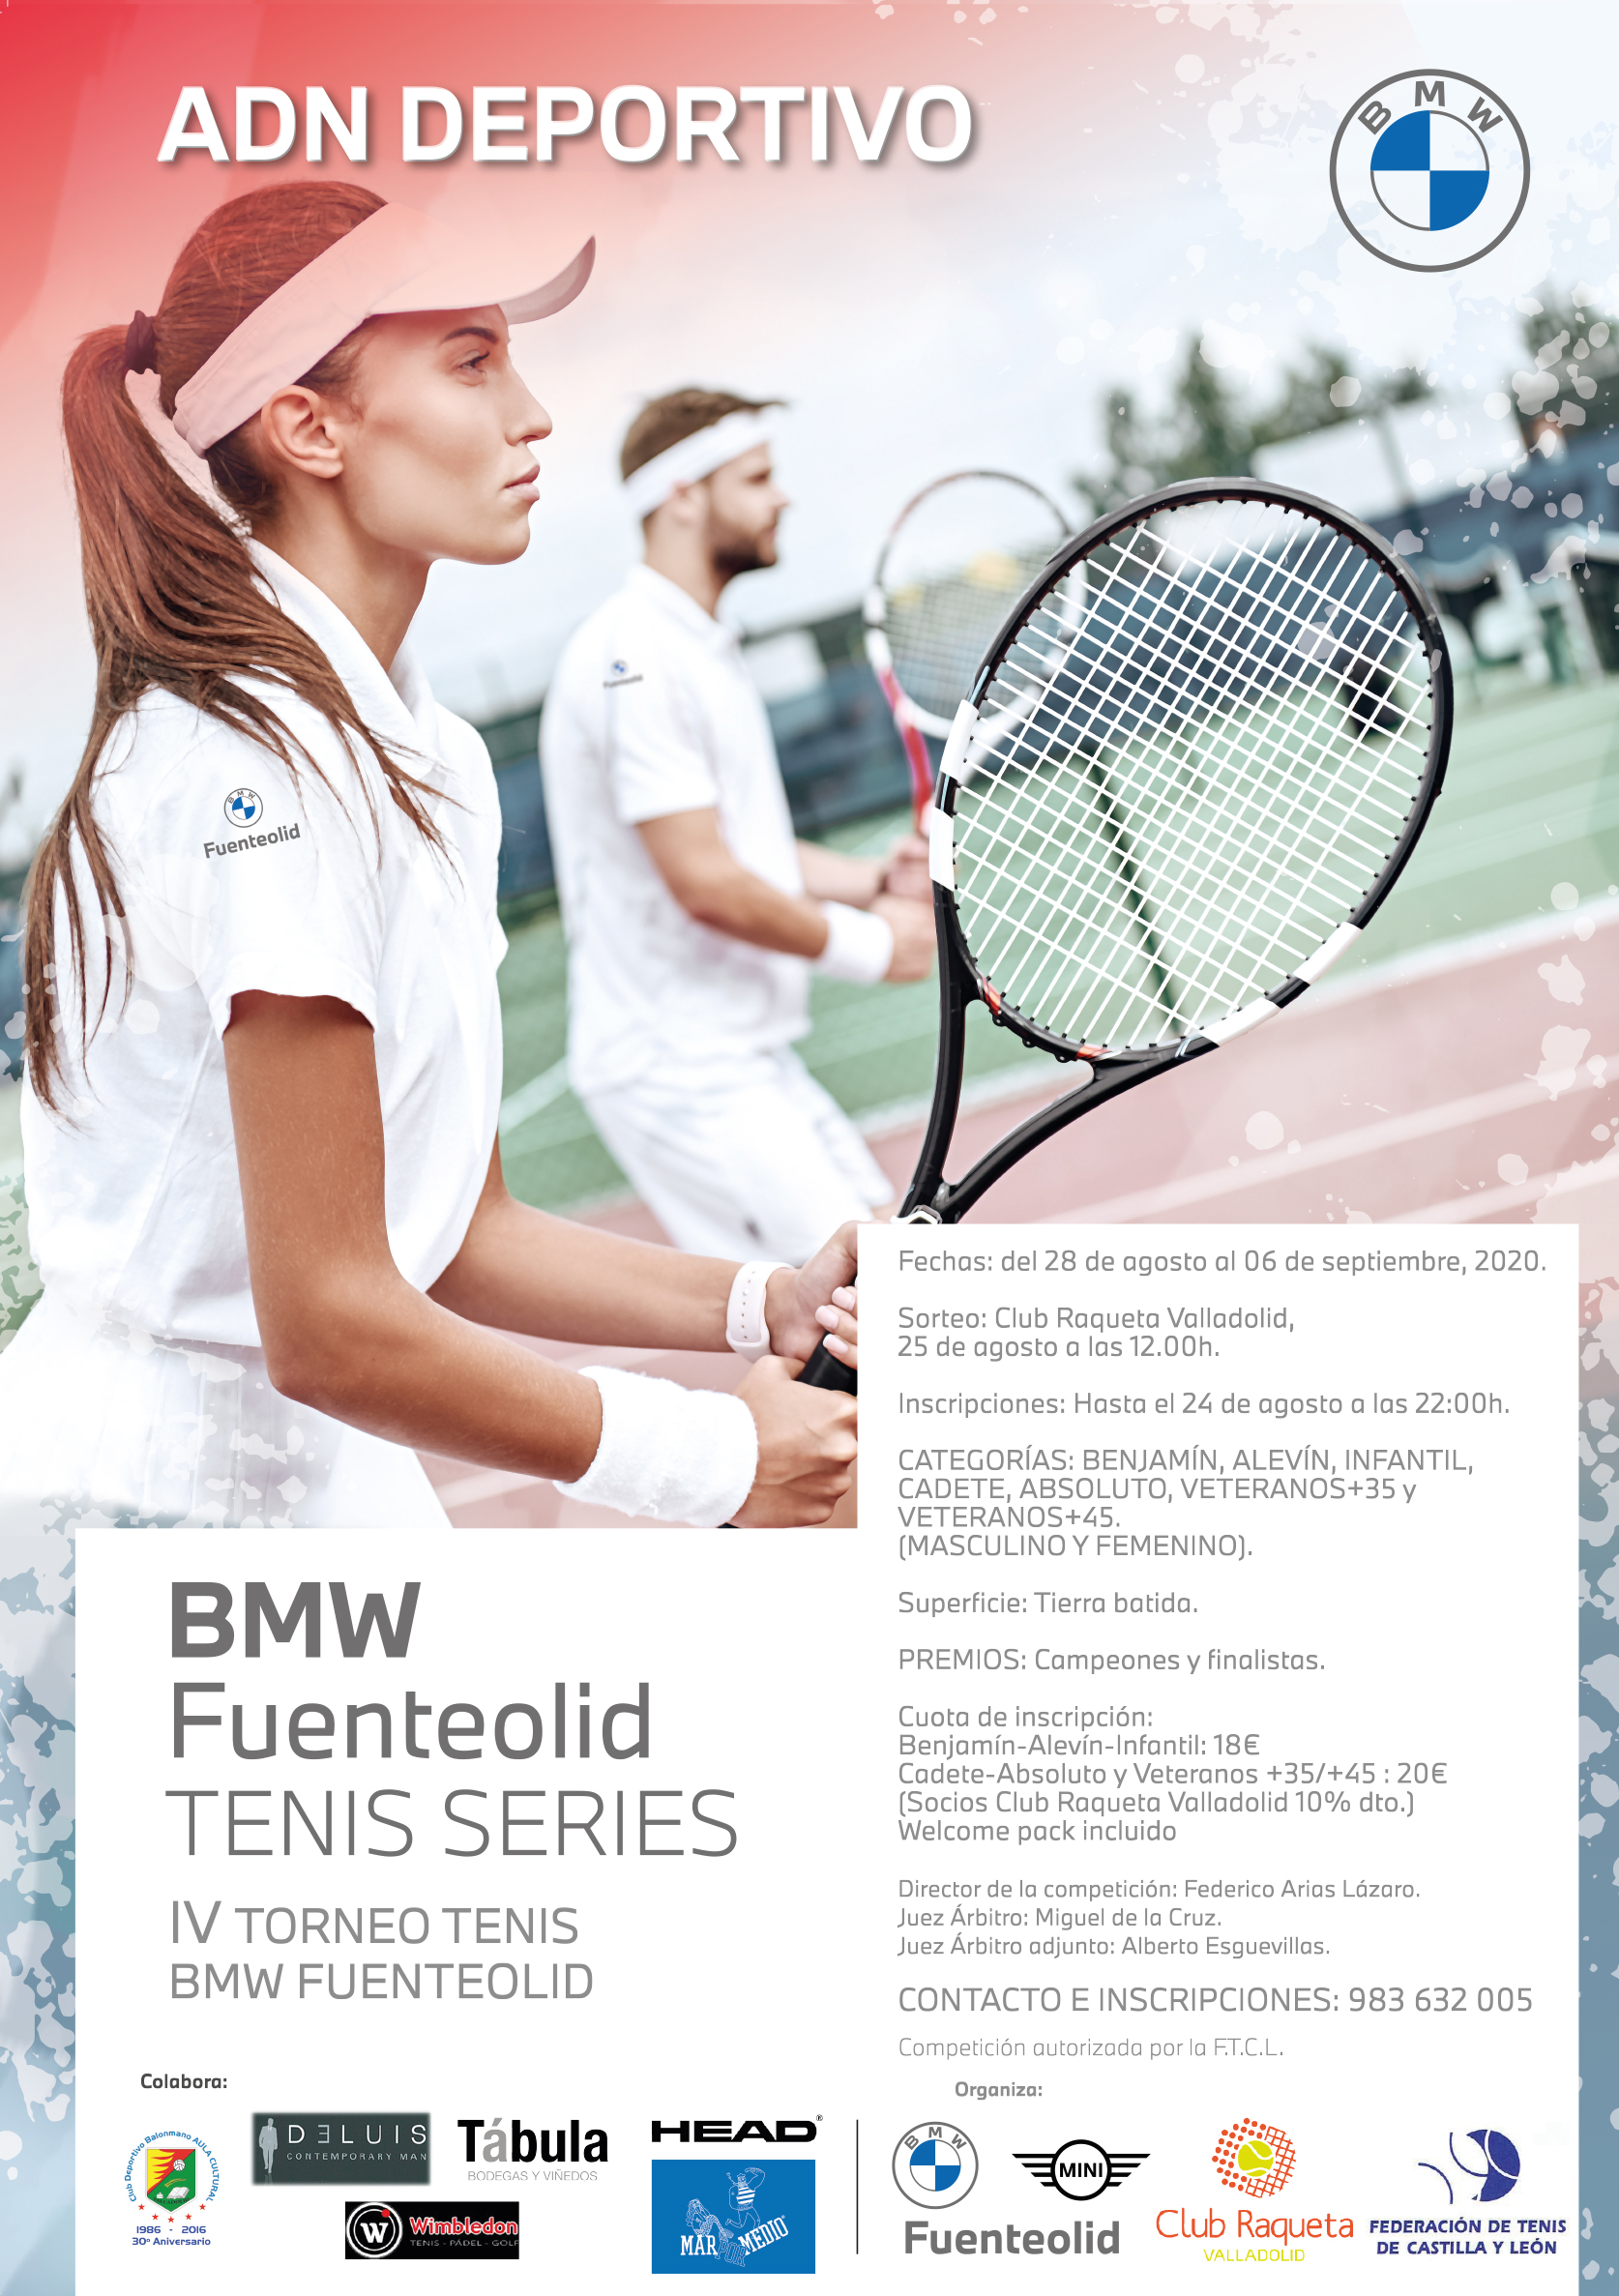 IV TORNEO TENIS BMW FUENTEOLID